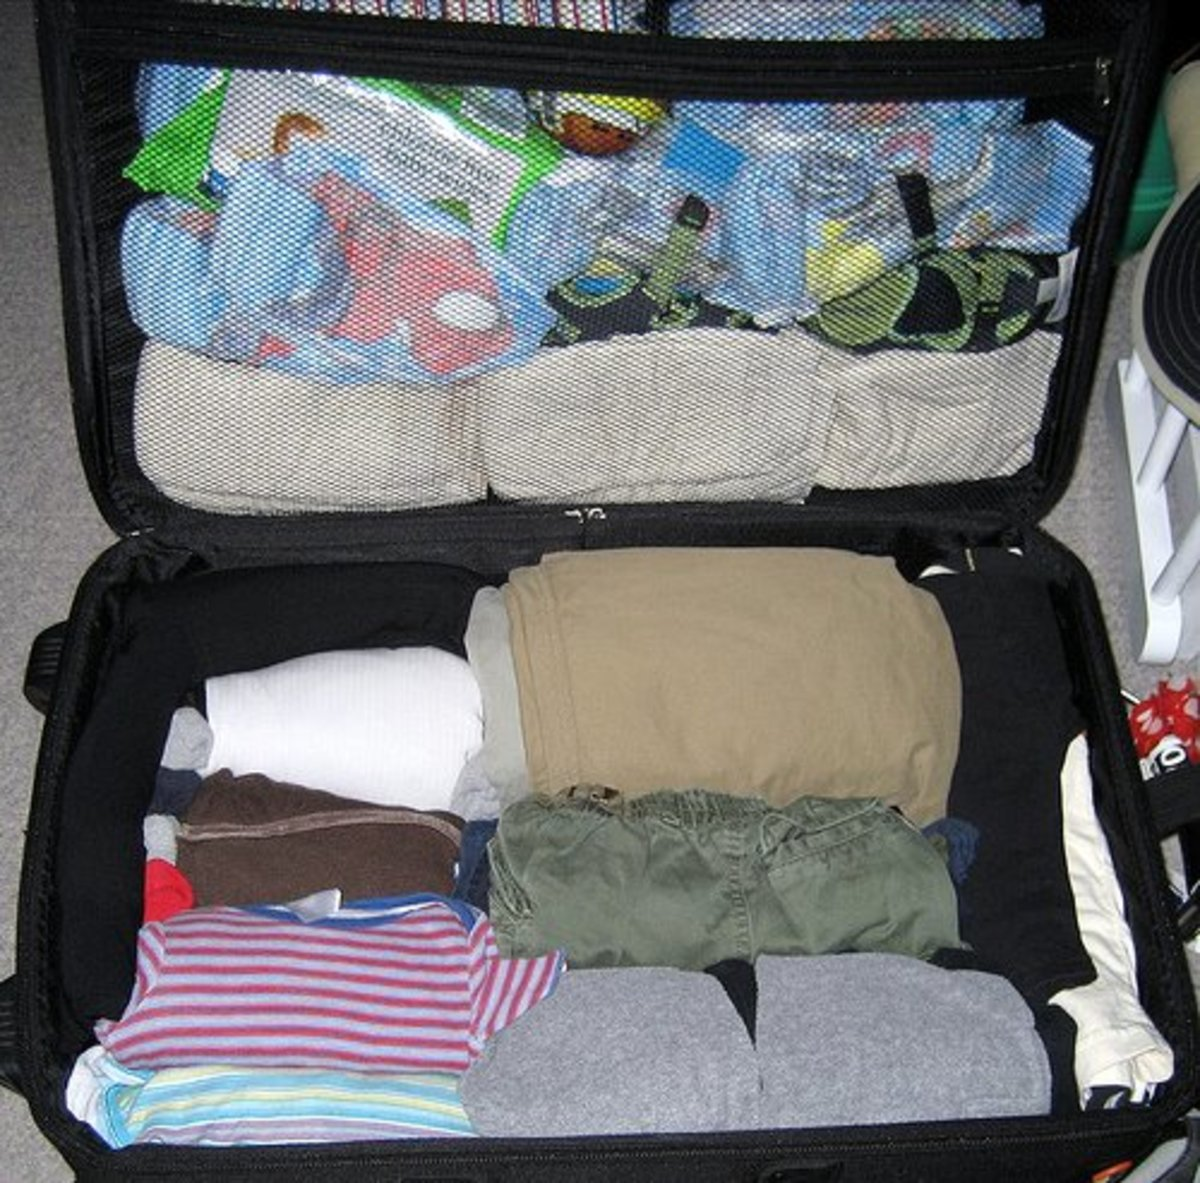 Packing Tips for Packing Light When Travelling